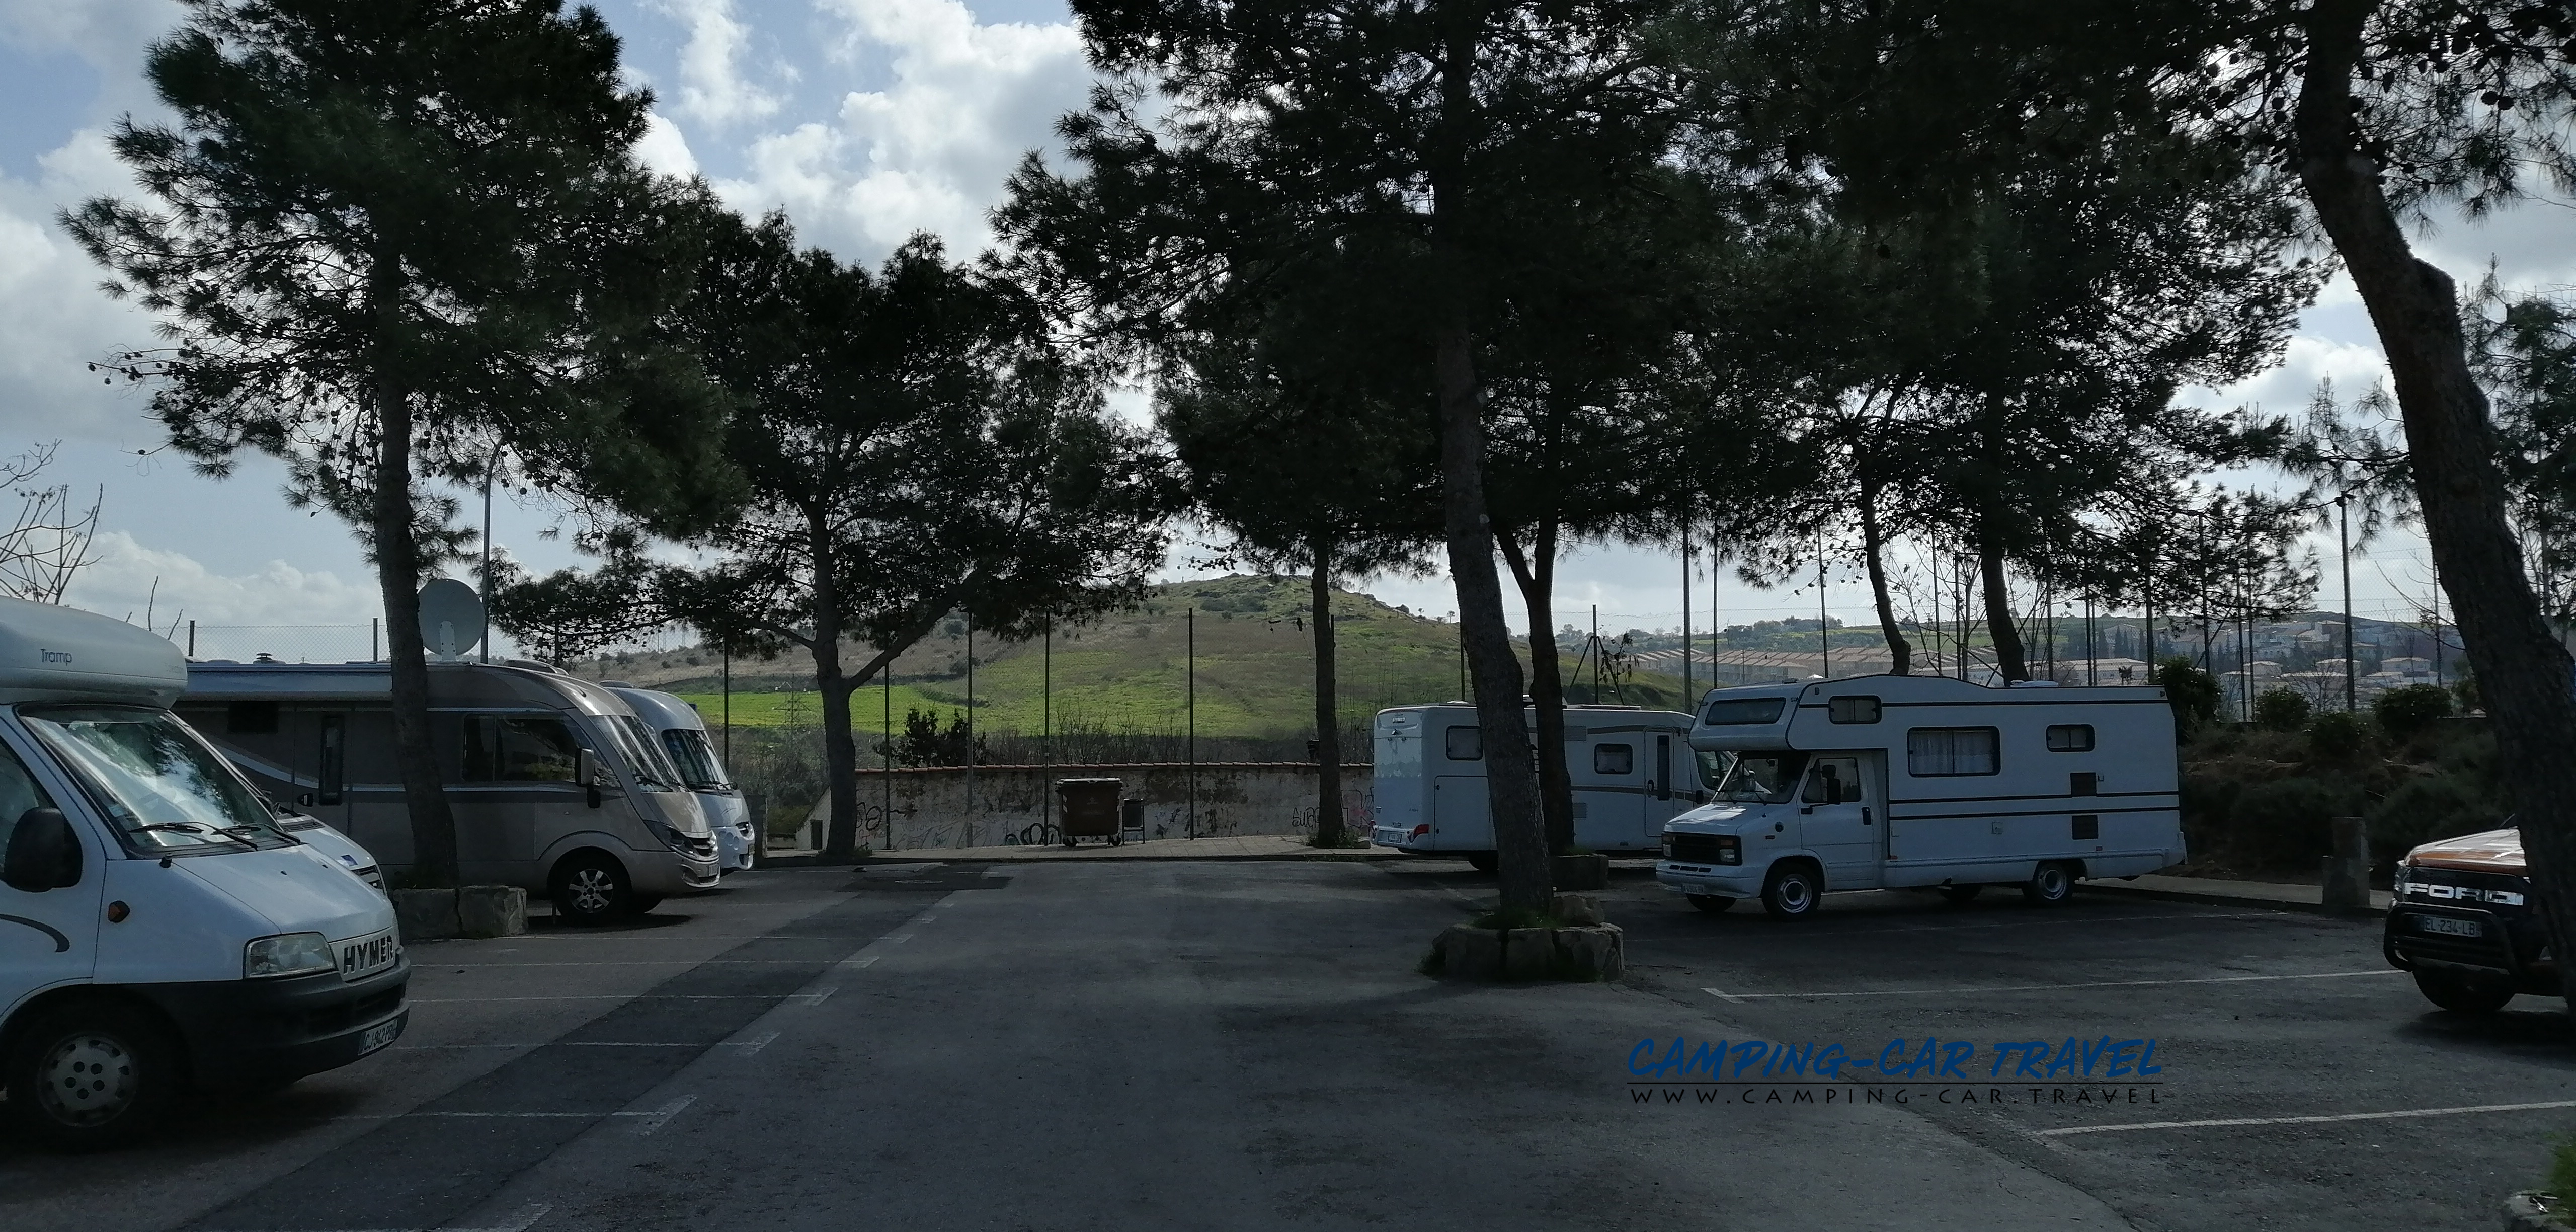 aire services camping car Caceres Espagne Spain